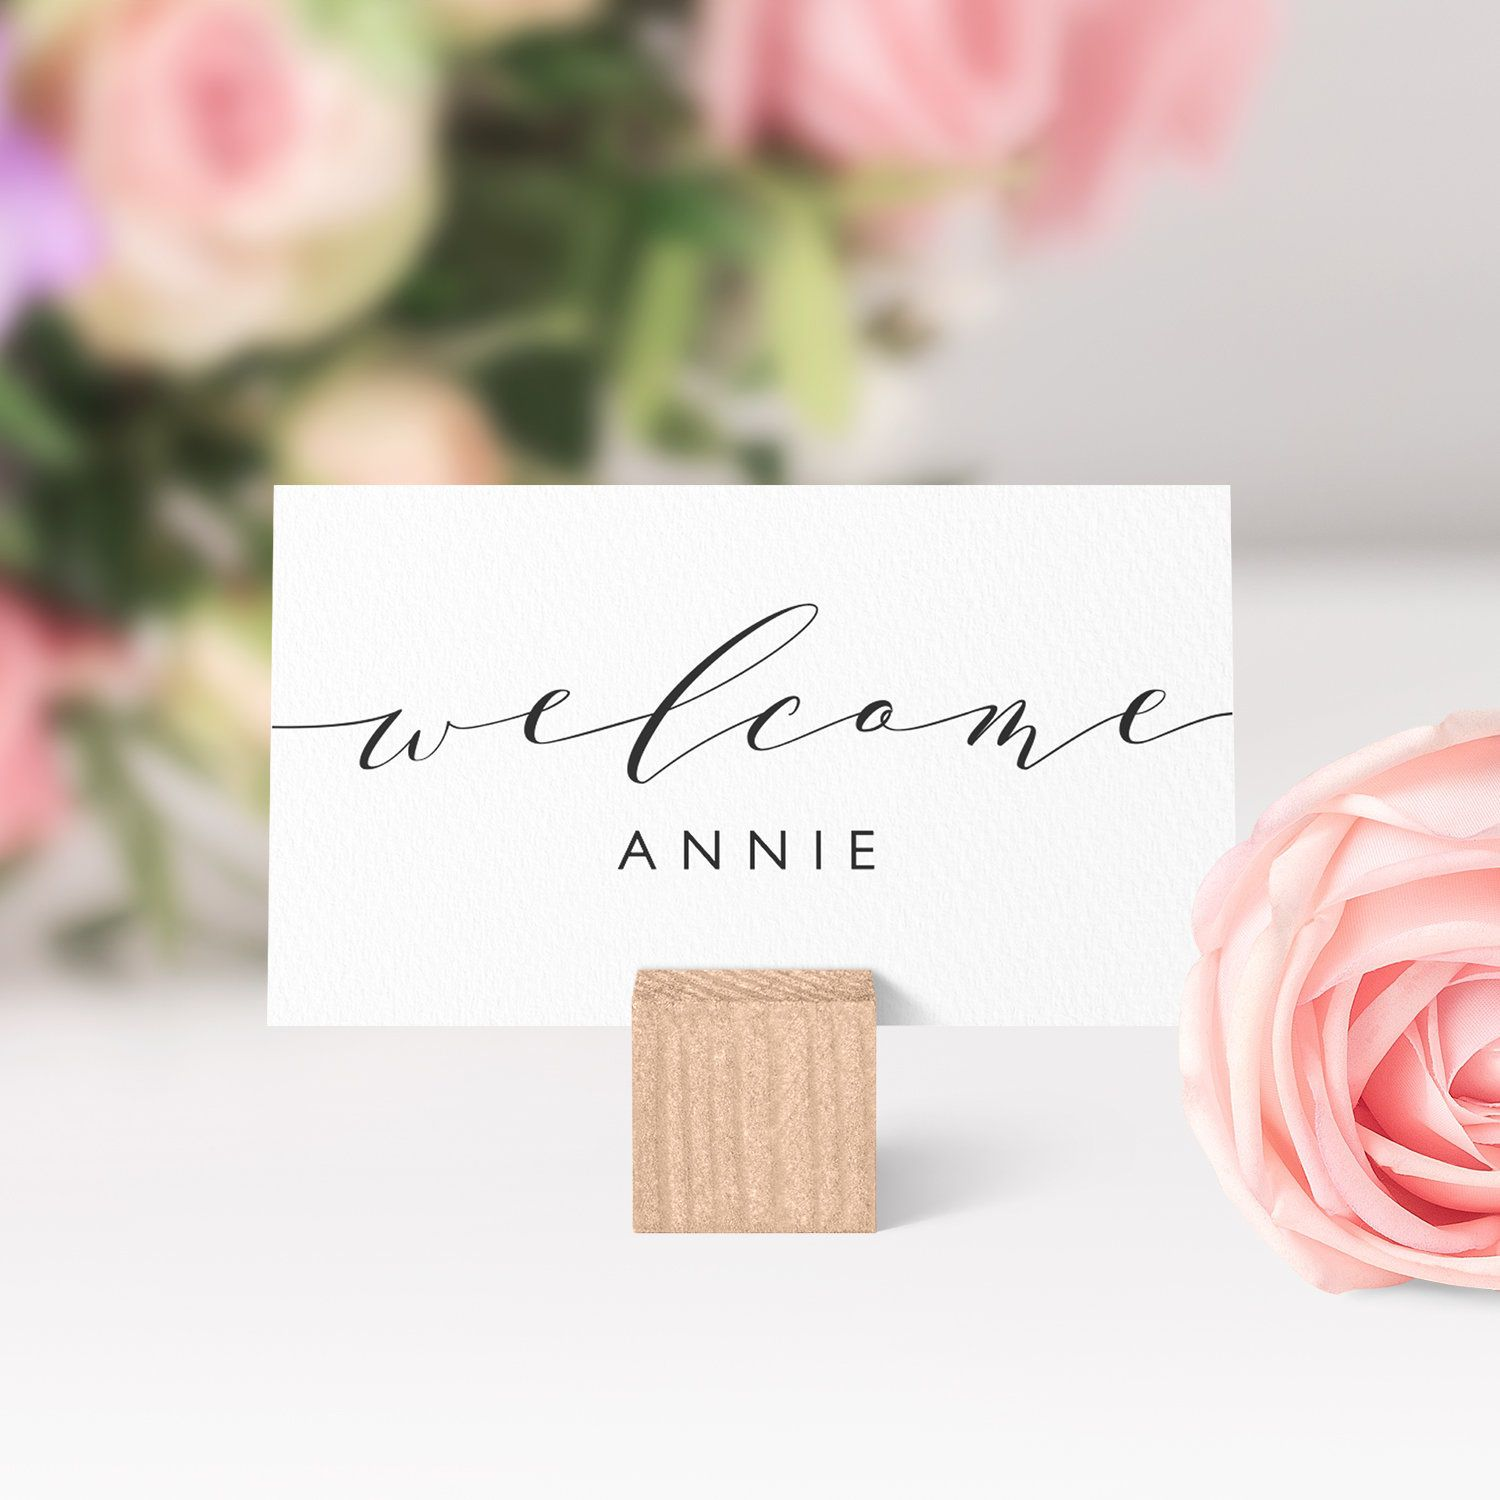 007 Unusual Name Place Card Template For Wedding Example  Free WordFull